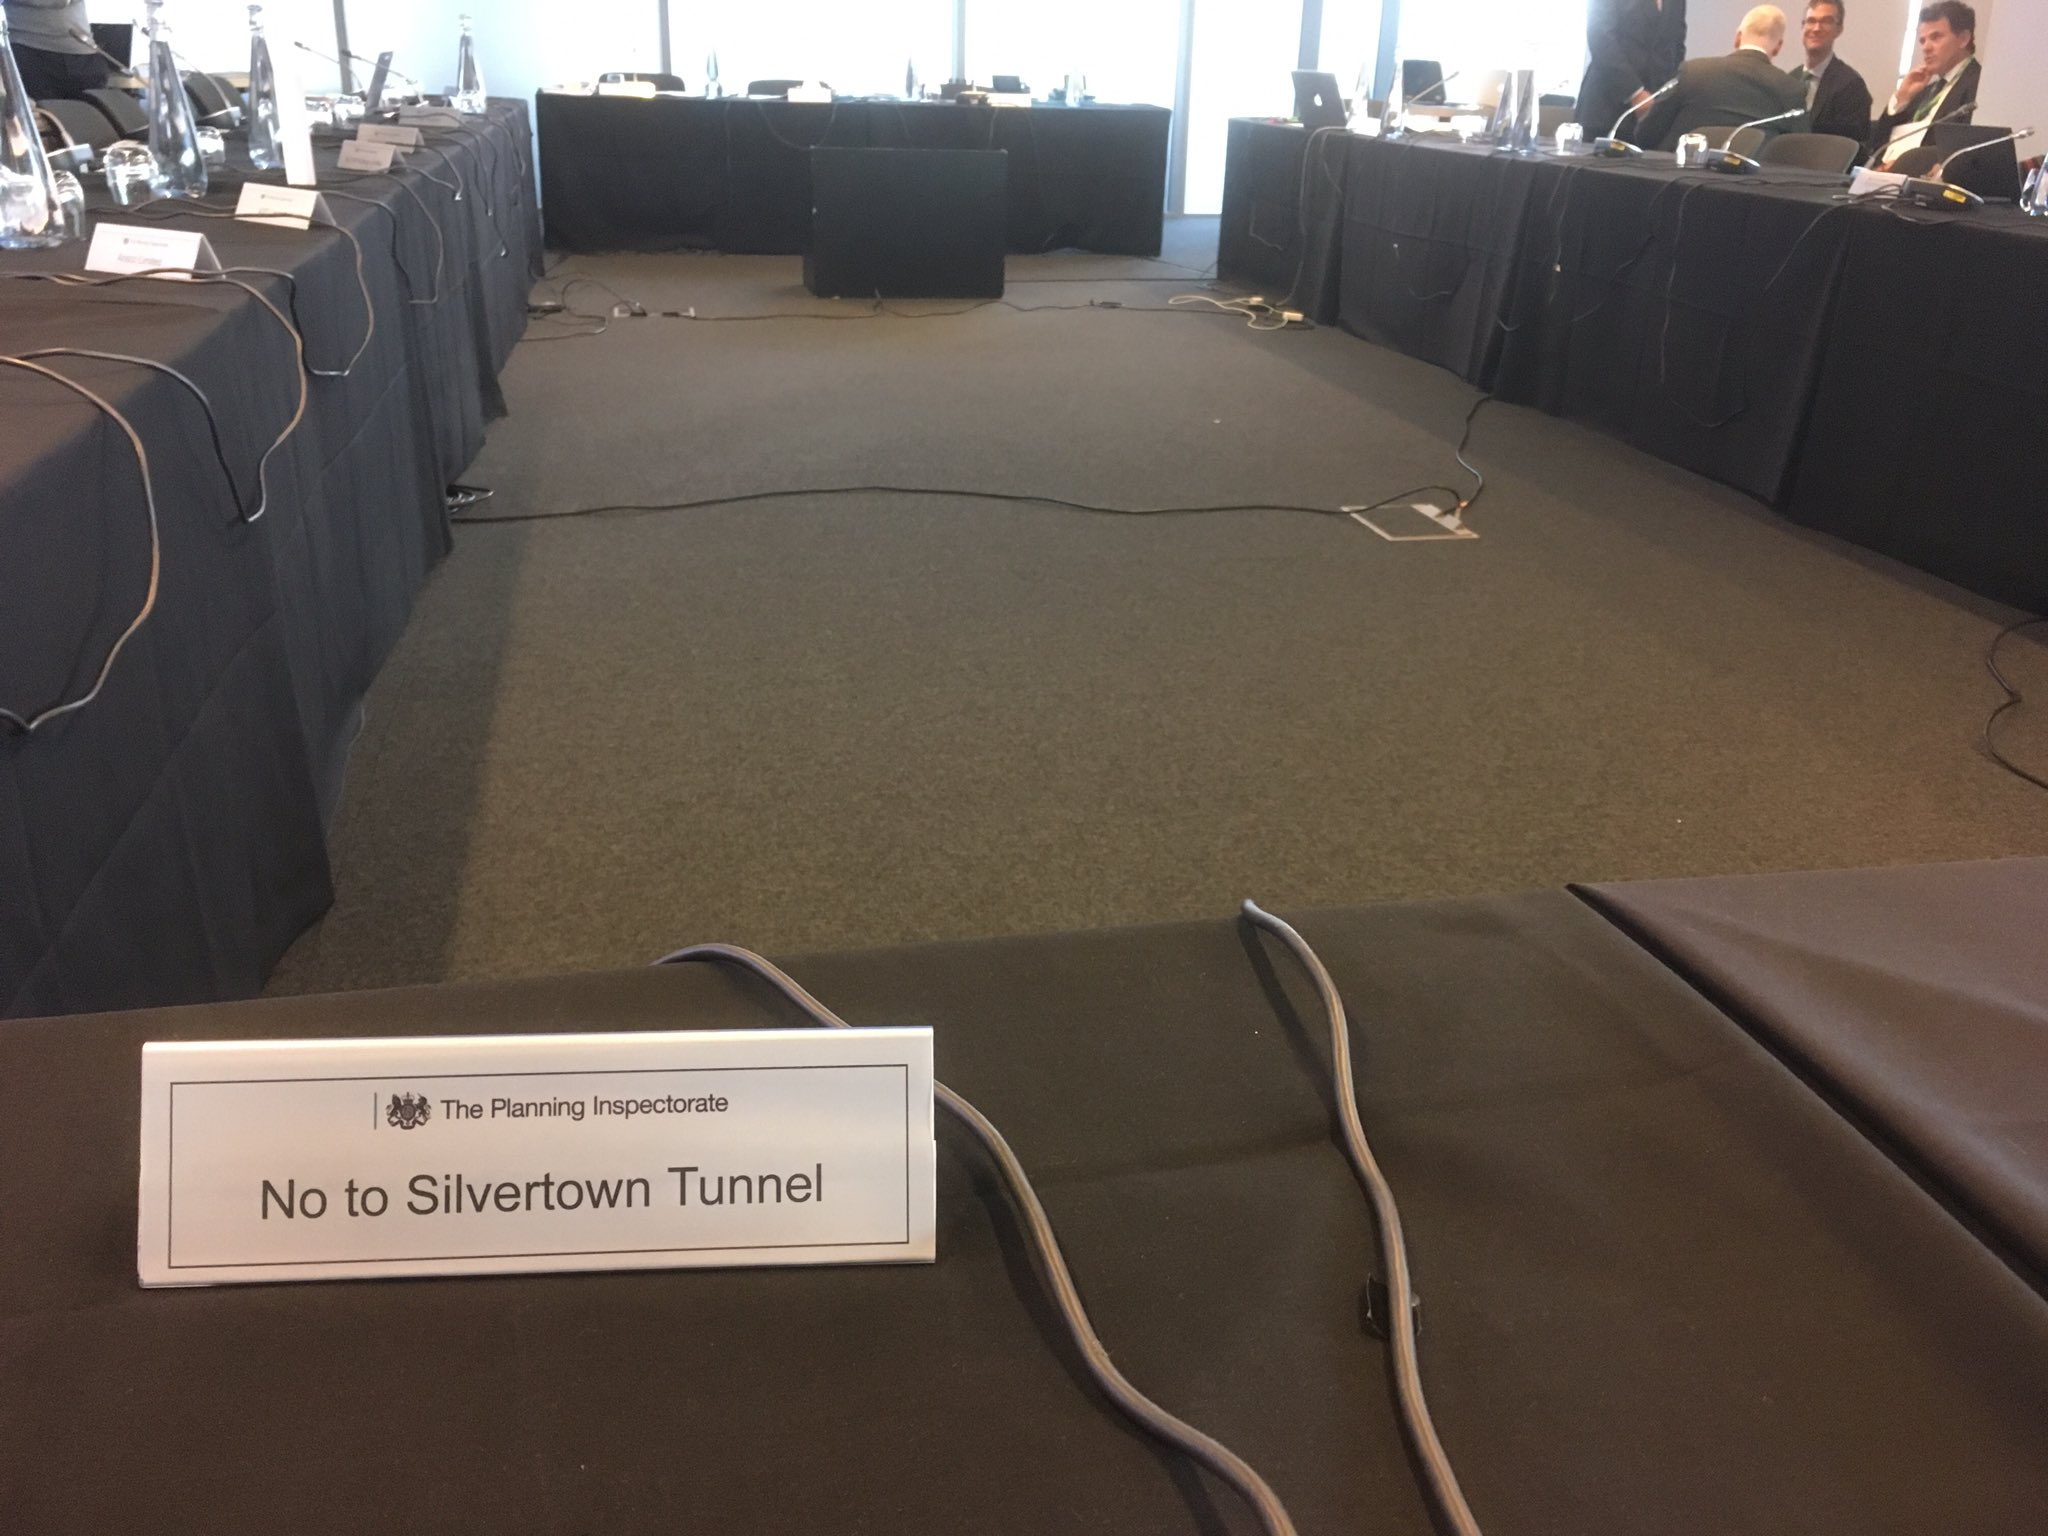 We're back at the Silvertown Tunnel public examination - this time at the Crystal in the Royal Docks. https://t.co/LxqymB8A6N https://t.co/4iqFyHxLSy